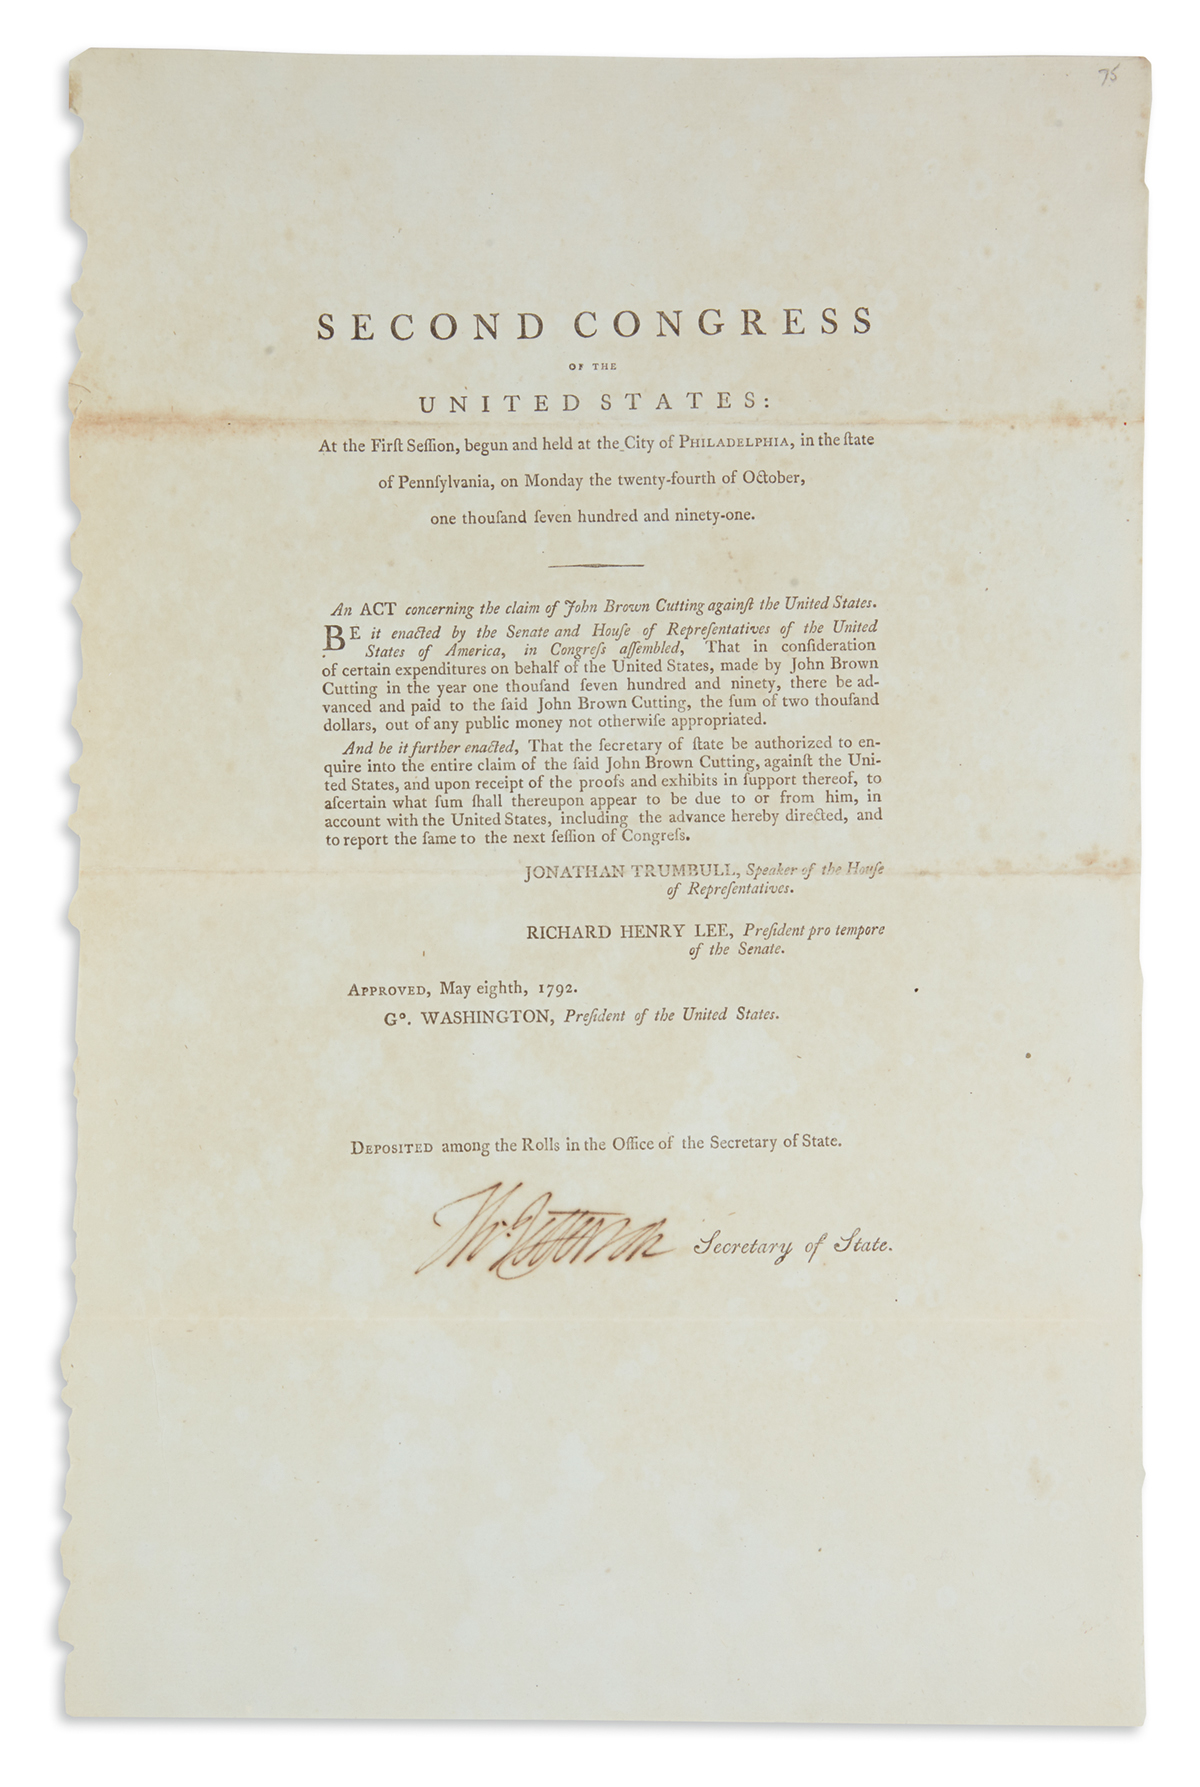 JEFFERSON, THOMAS. Printed Document Signed, Th:Jefferson, as Secretary of State, an act of the Second Congress: